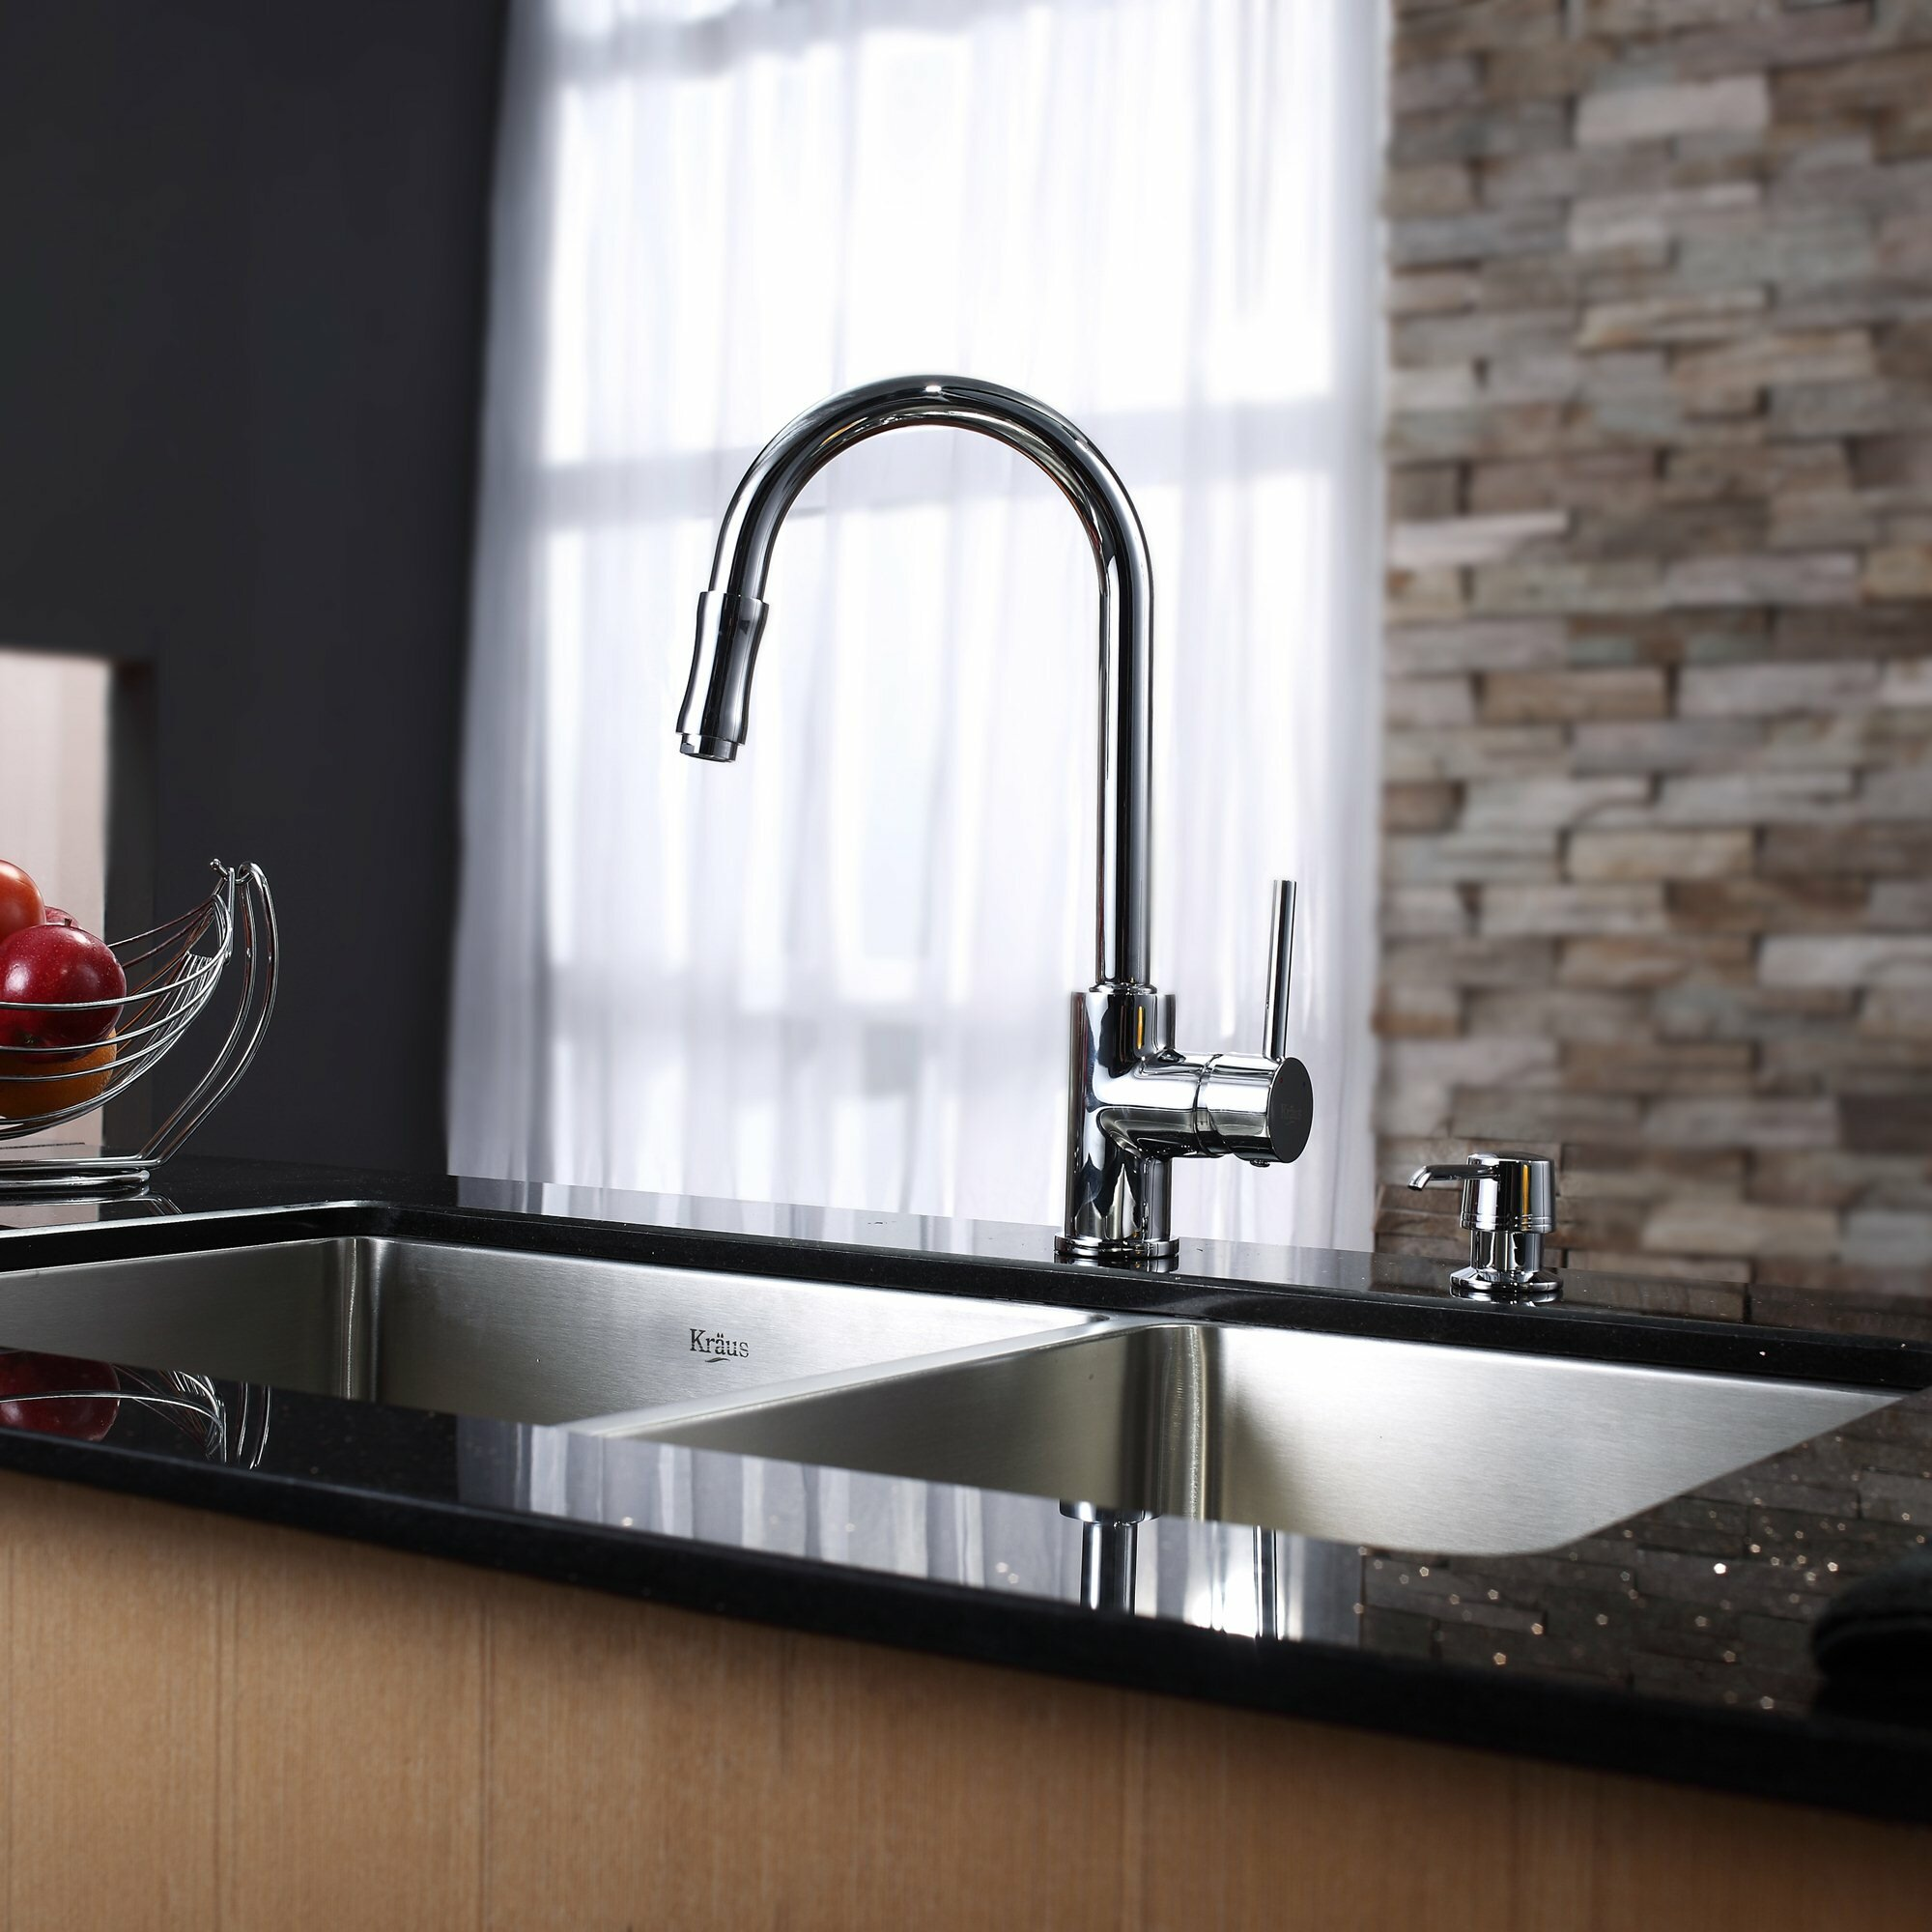 kraus undermount 70 30 double bowl kitchen sink with faucet and soap dispenser reviews wayfair. Black Bedroom Furniture Sets. Home Design Ideas